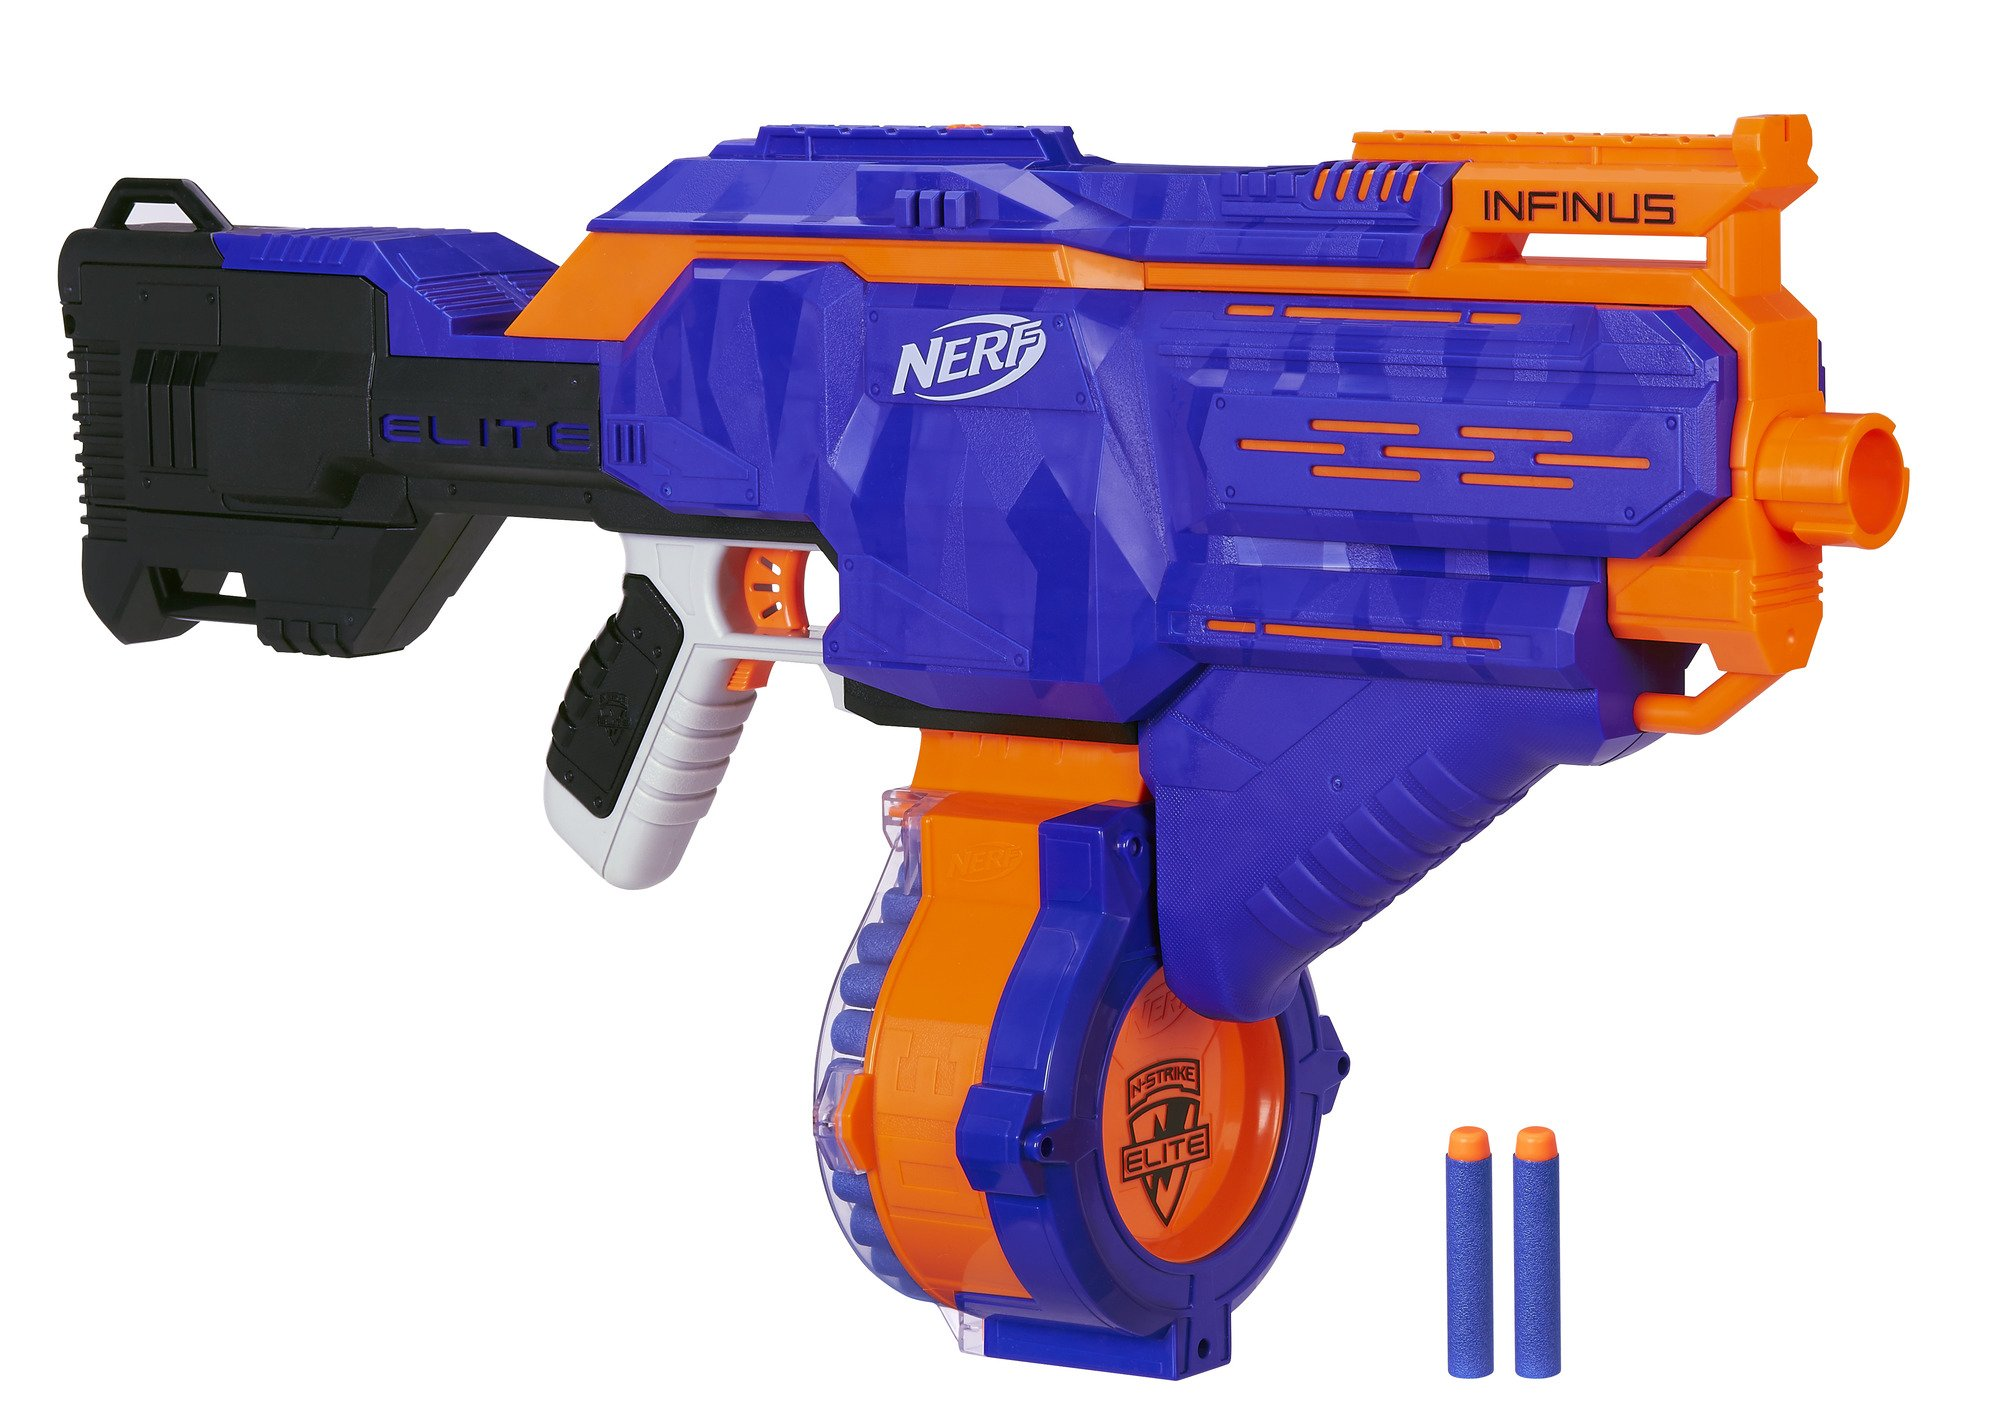 Infinus Nerf N-Strike Elite Toy Motorized Blaster with Speed-Load Technology, 30-Dart Drum, and 30 Official Nerf Elite Darts for Kids, Teens, and Adults by NERF